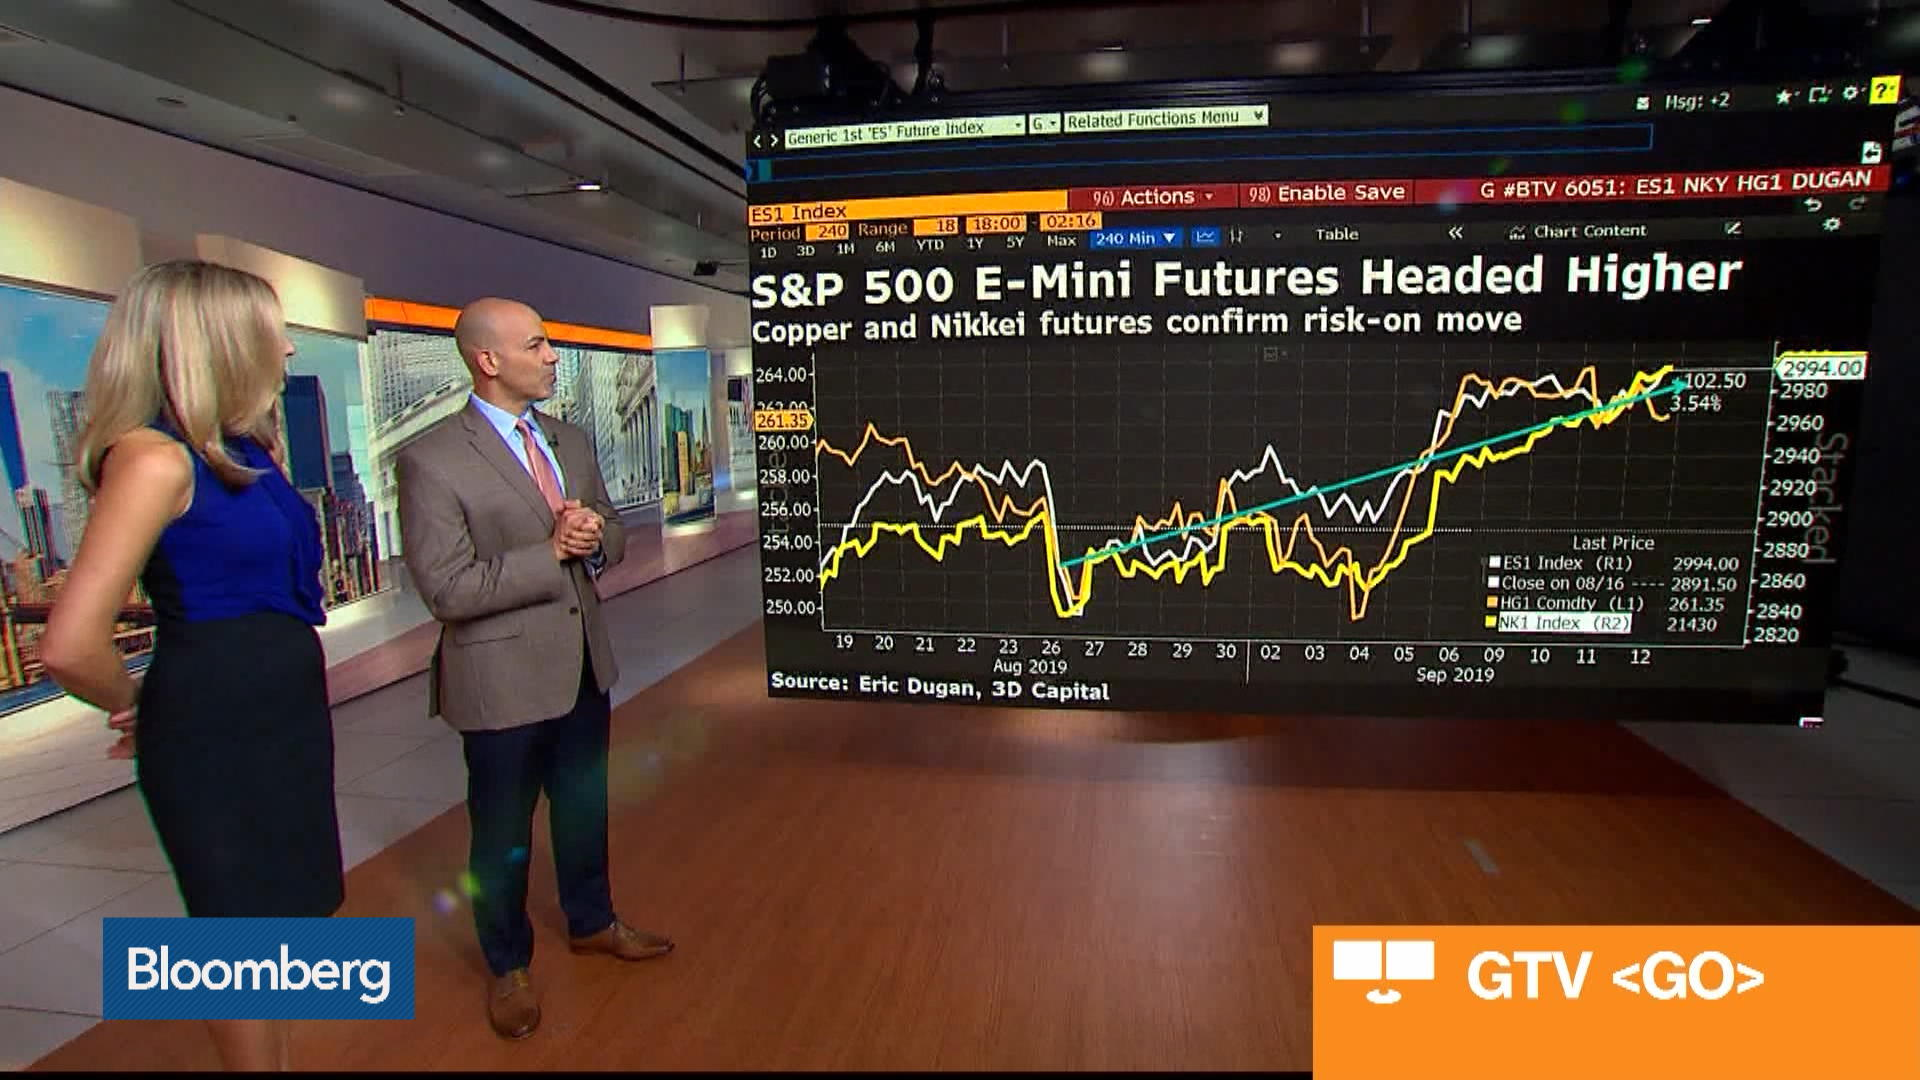 Copper, Nikkei Futures Confirm Risk-On Move: Eric Dugan